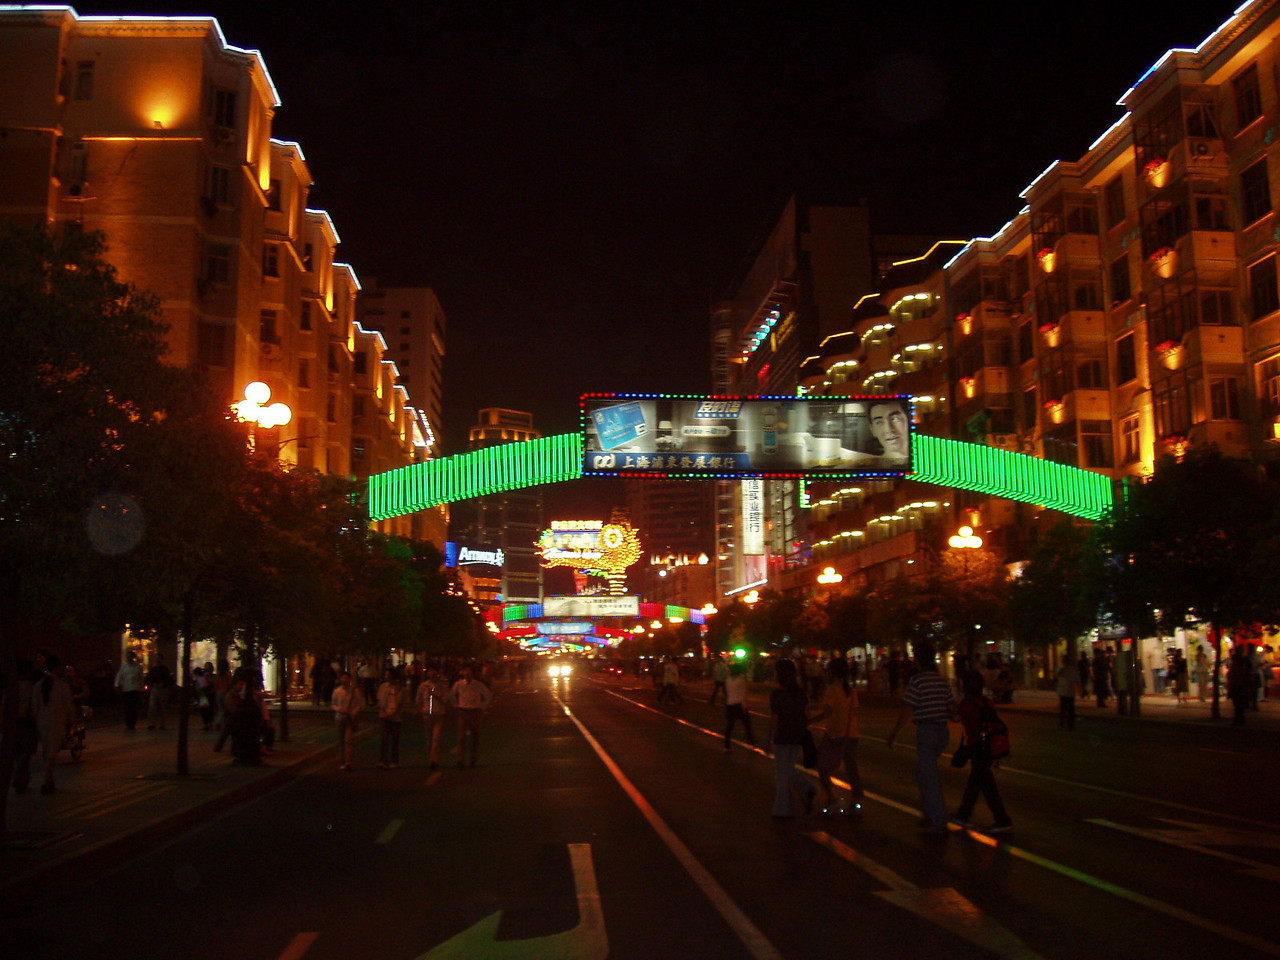 One of the main entrances to the night market...